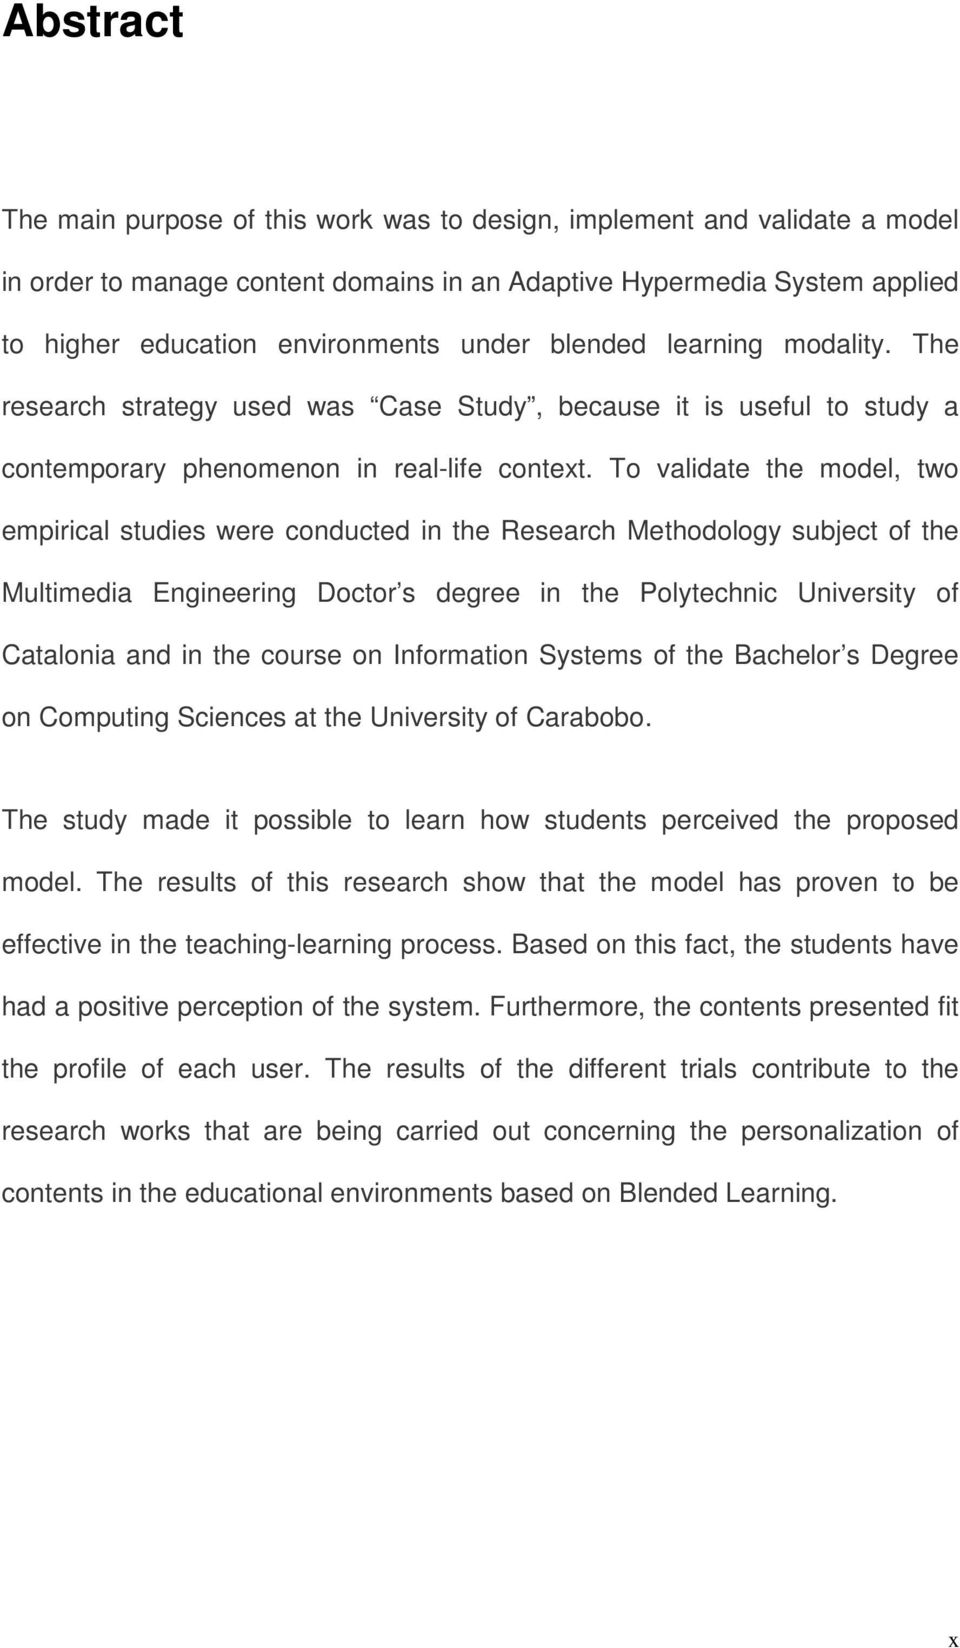 To validate the model, two empirical studies were conducted in the Research Methodology subject of the Multimedia Engineering Doctor s degree in the Polytechnic University of Catalonia and in the